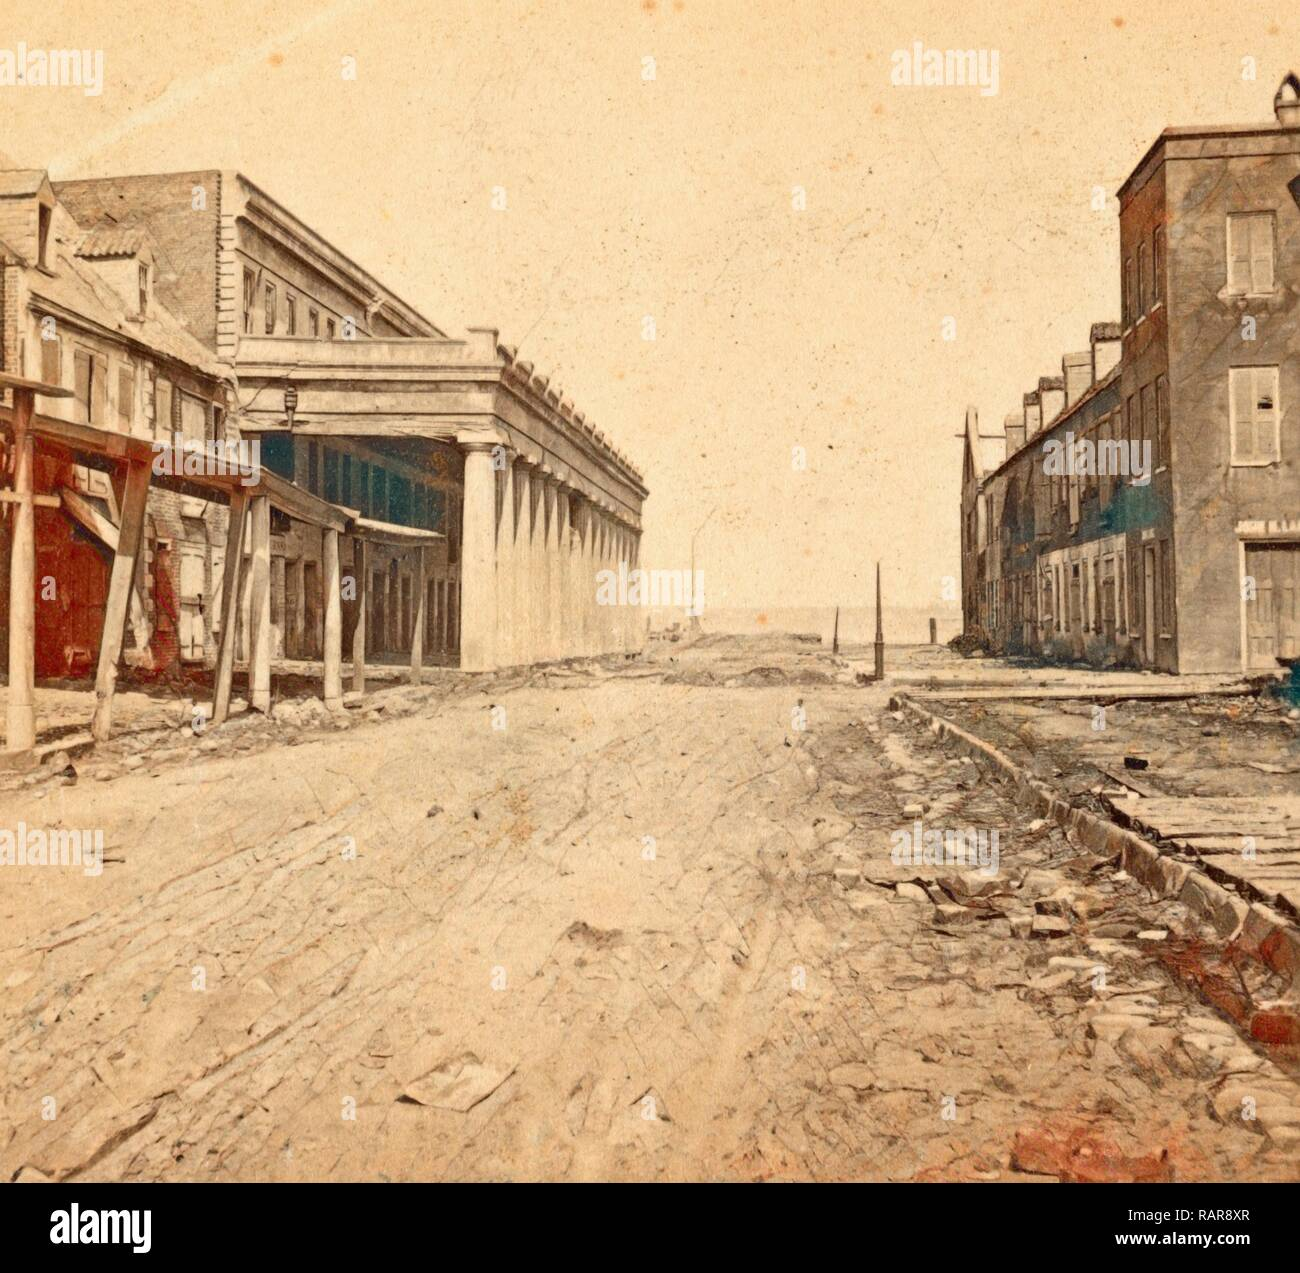 Vendue Range, Charleston, S.C., looking east, from near the corner of East Bay St., USA, US, Vintage photography reimagined - Stock Image